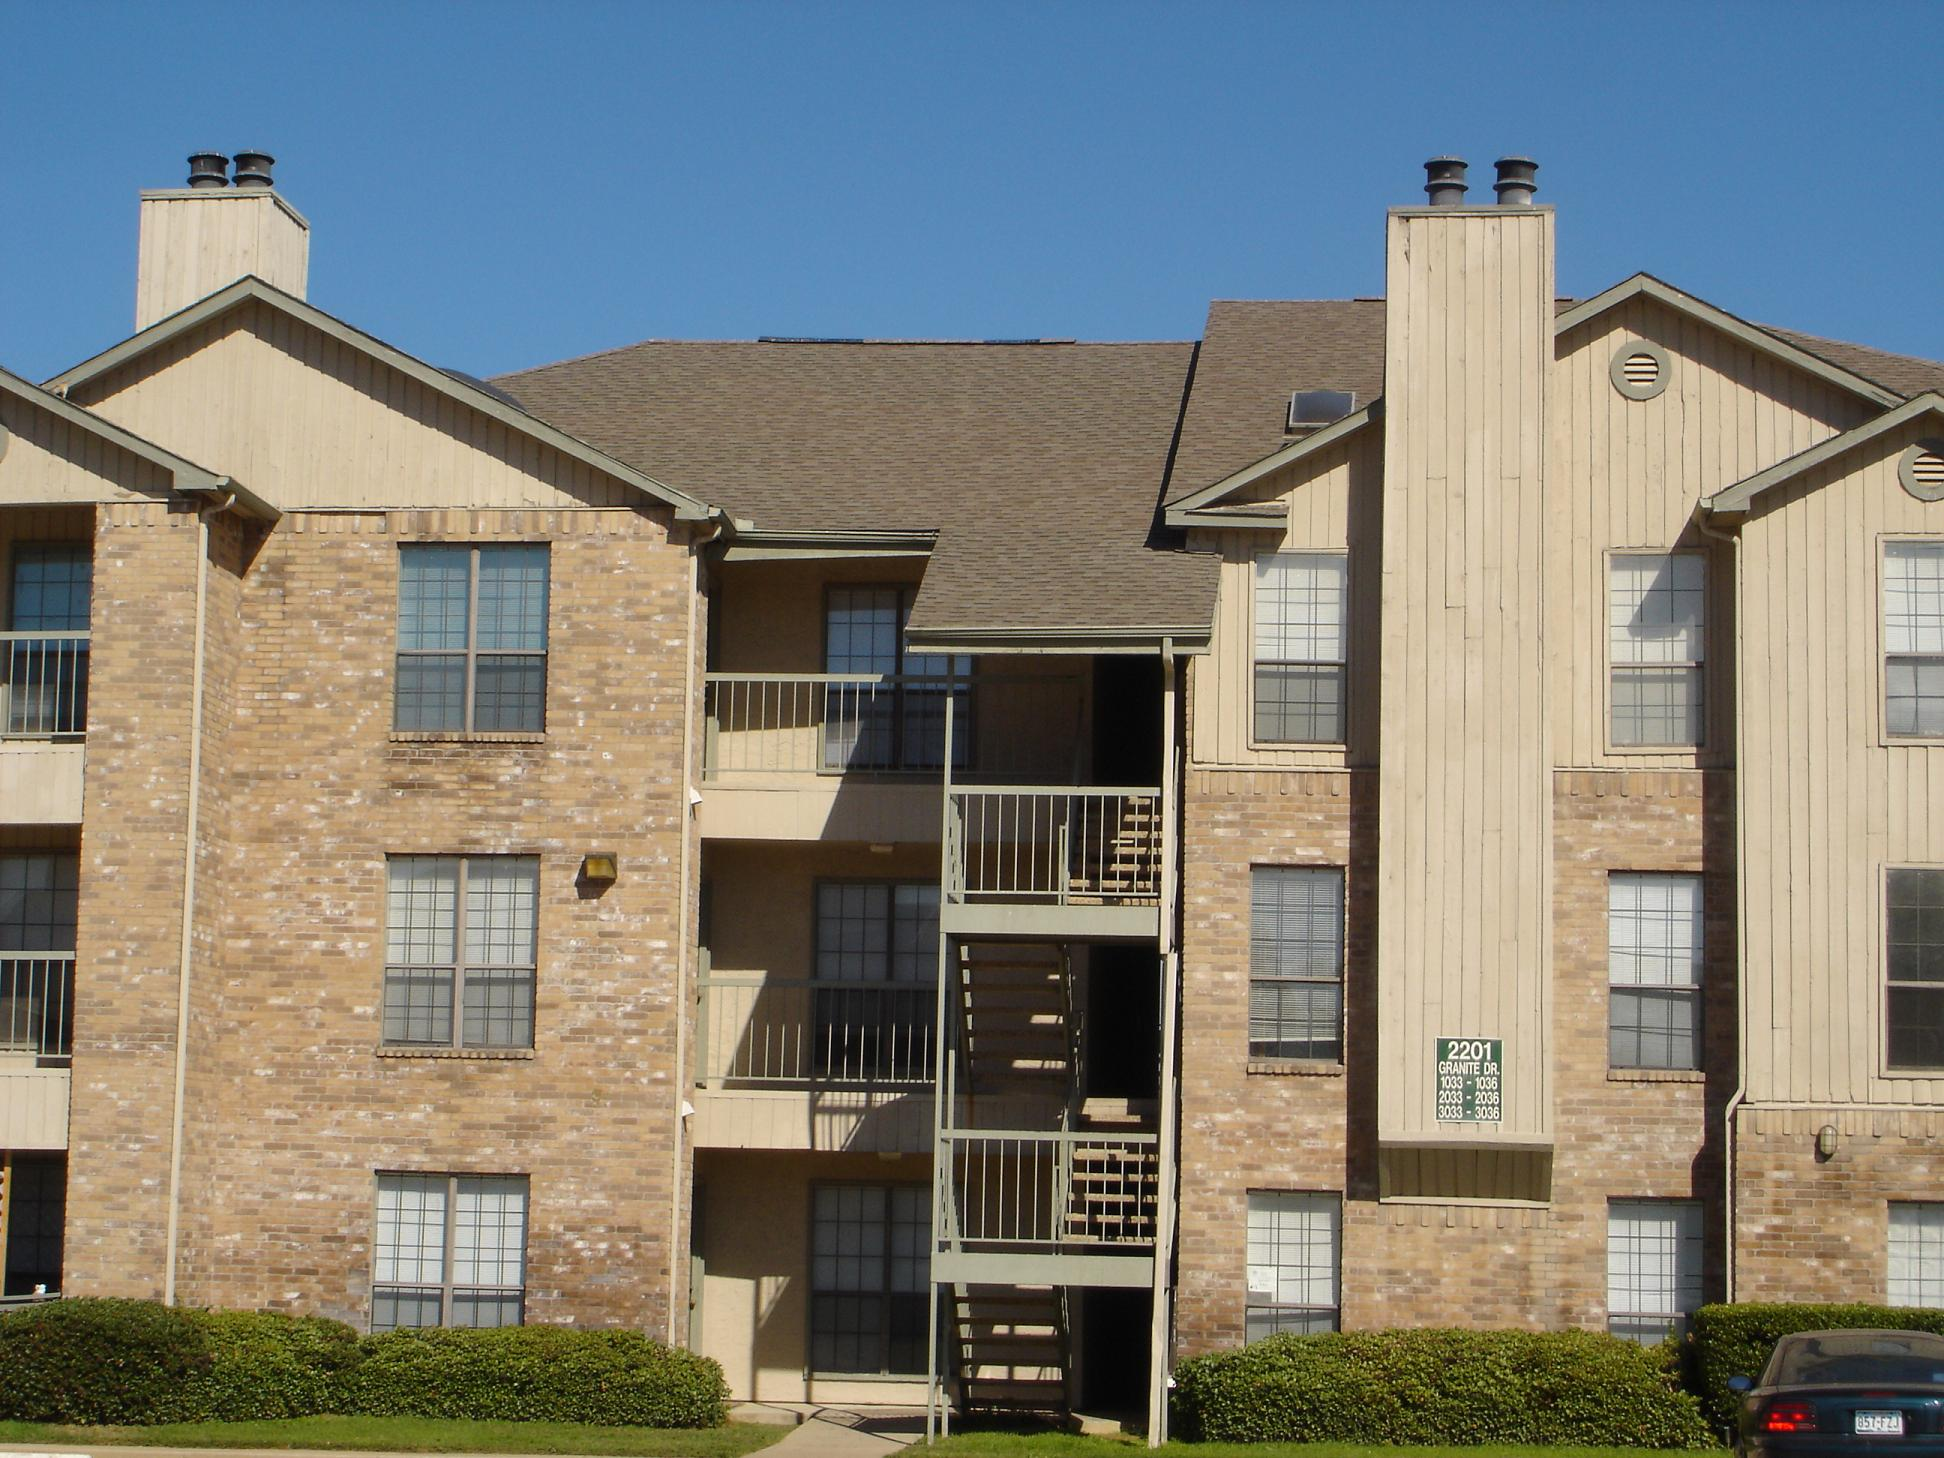 springfield-crossing-apartments-136878.jpg